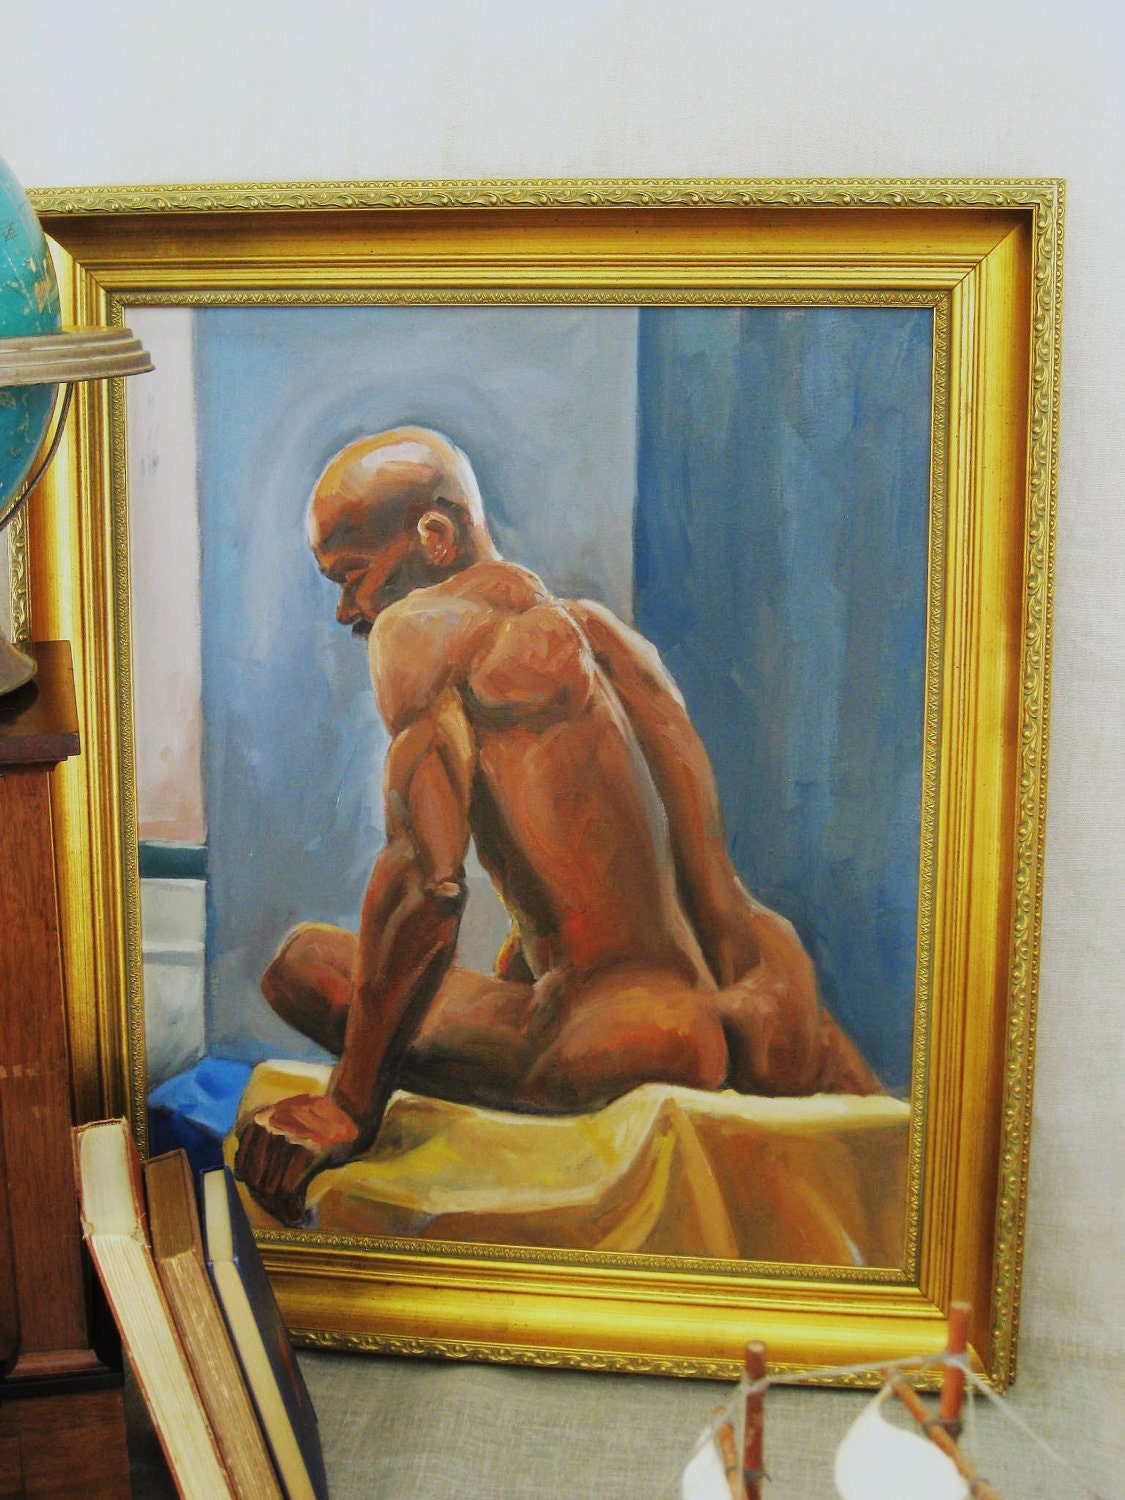 Vintage Portrait Nude Male- Vintage Art Gallery. From wilshepherd